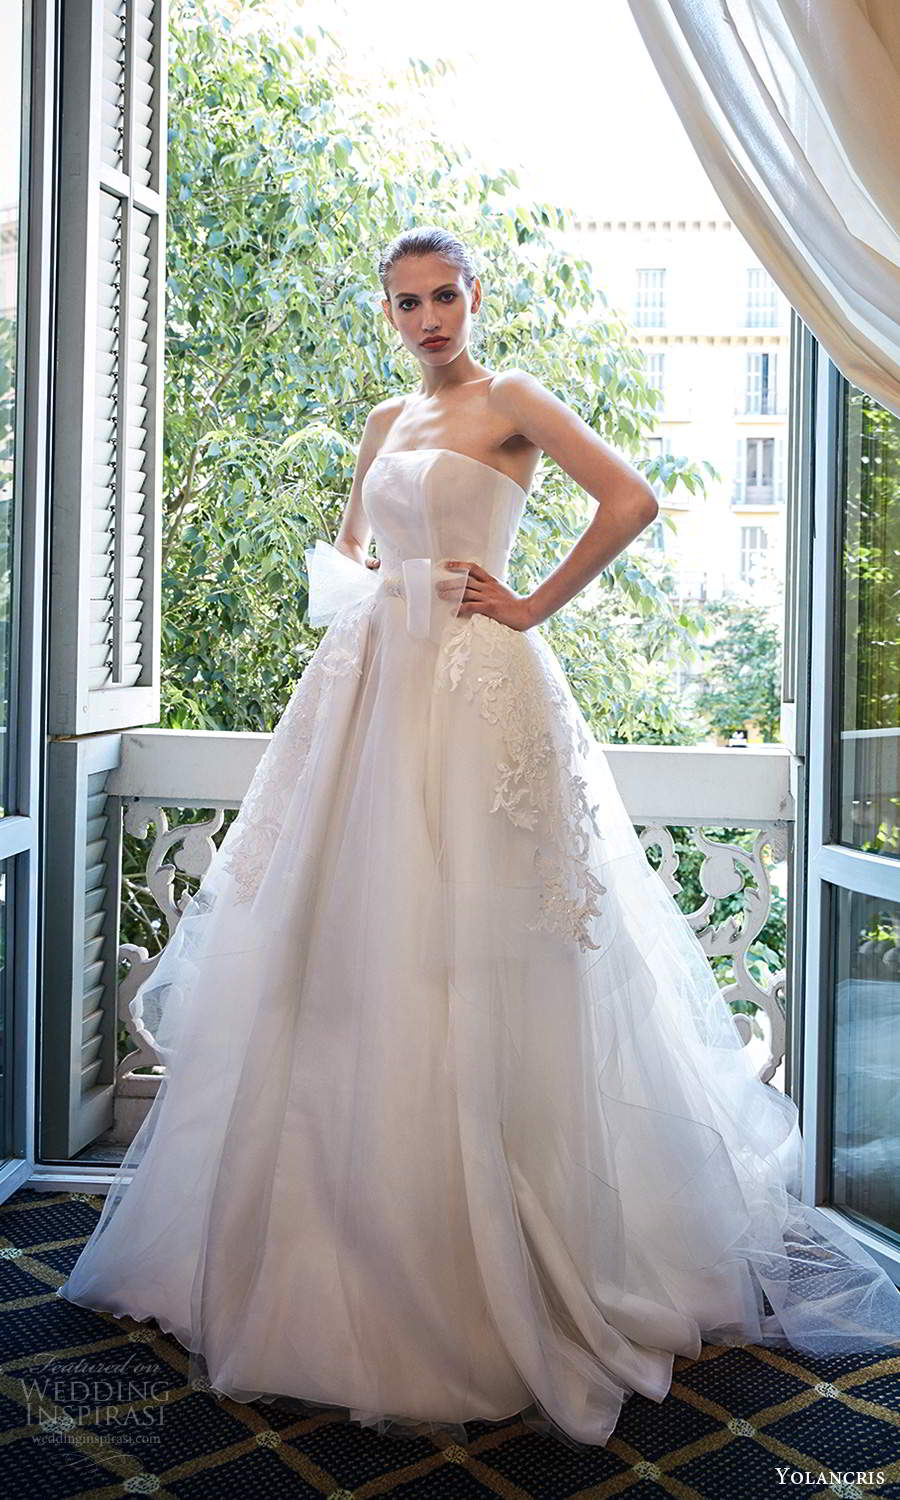 yolancris 2020 bridal couture strapless straight across neckline embellished a line ball gown wedding dress cathedral train (24) mv